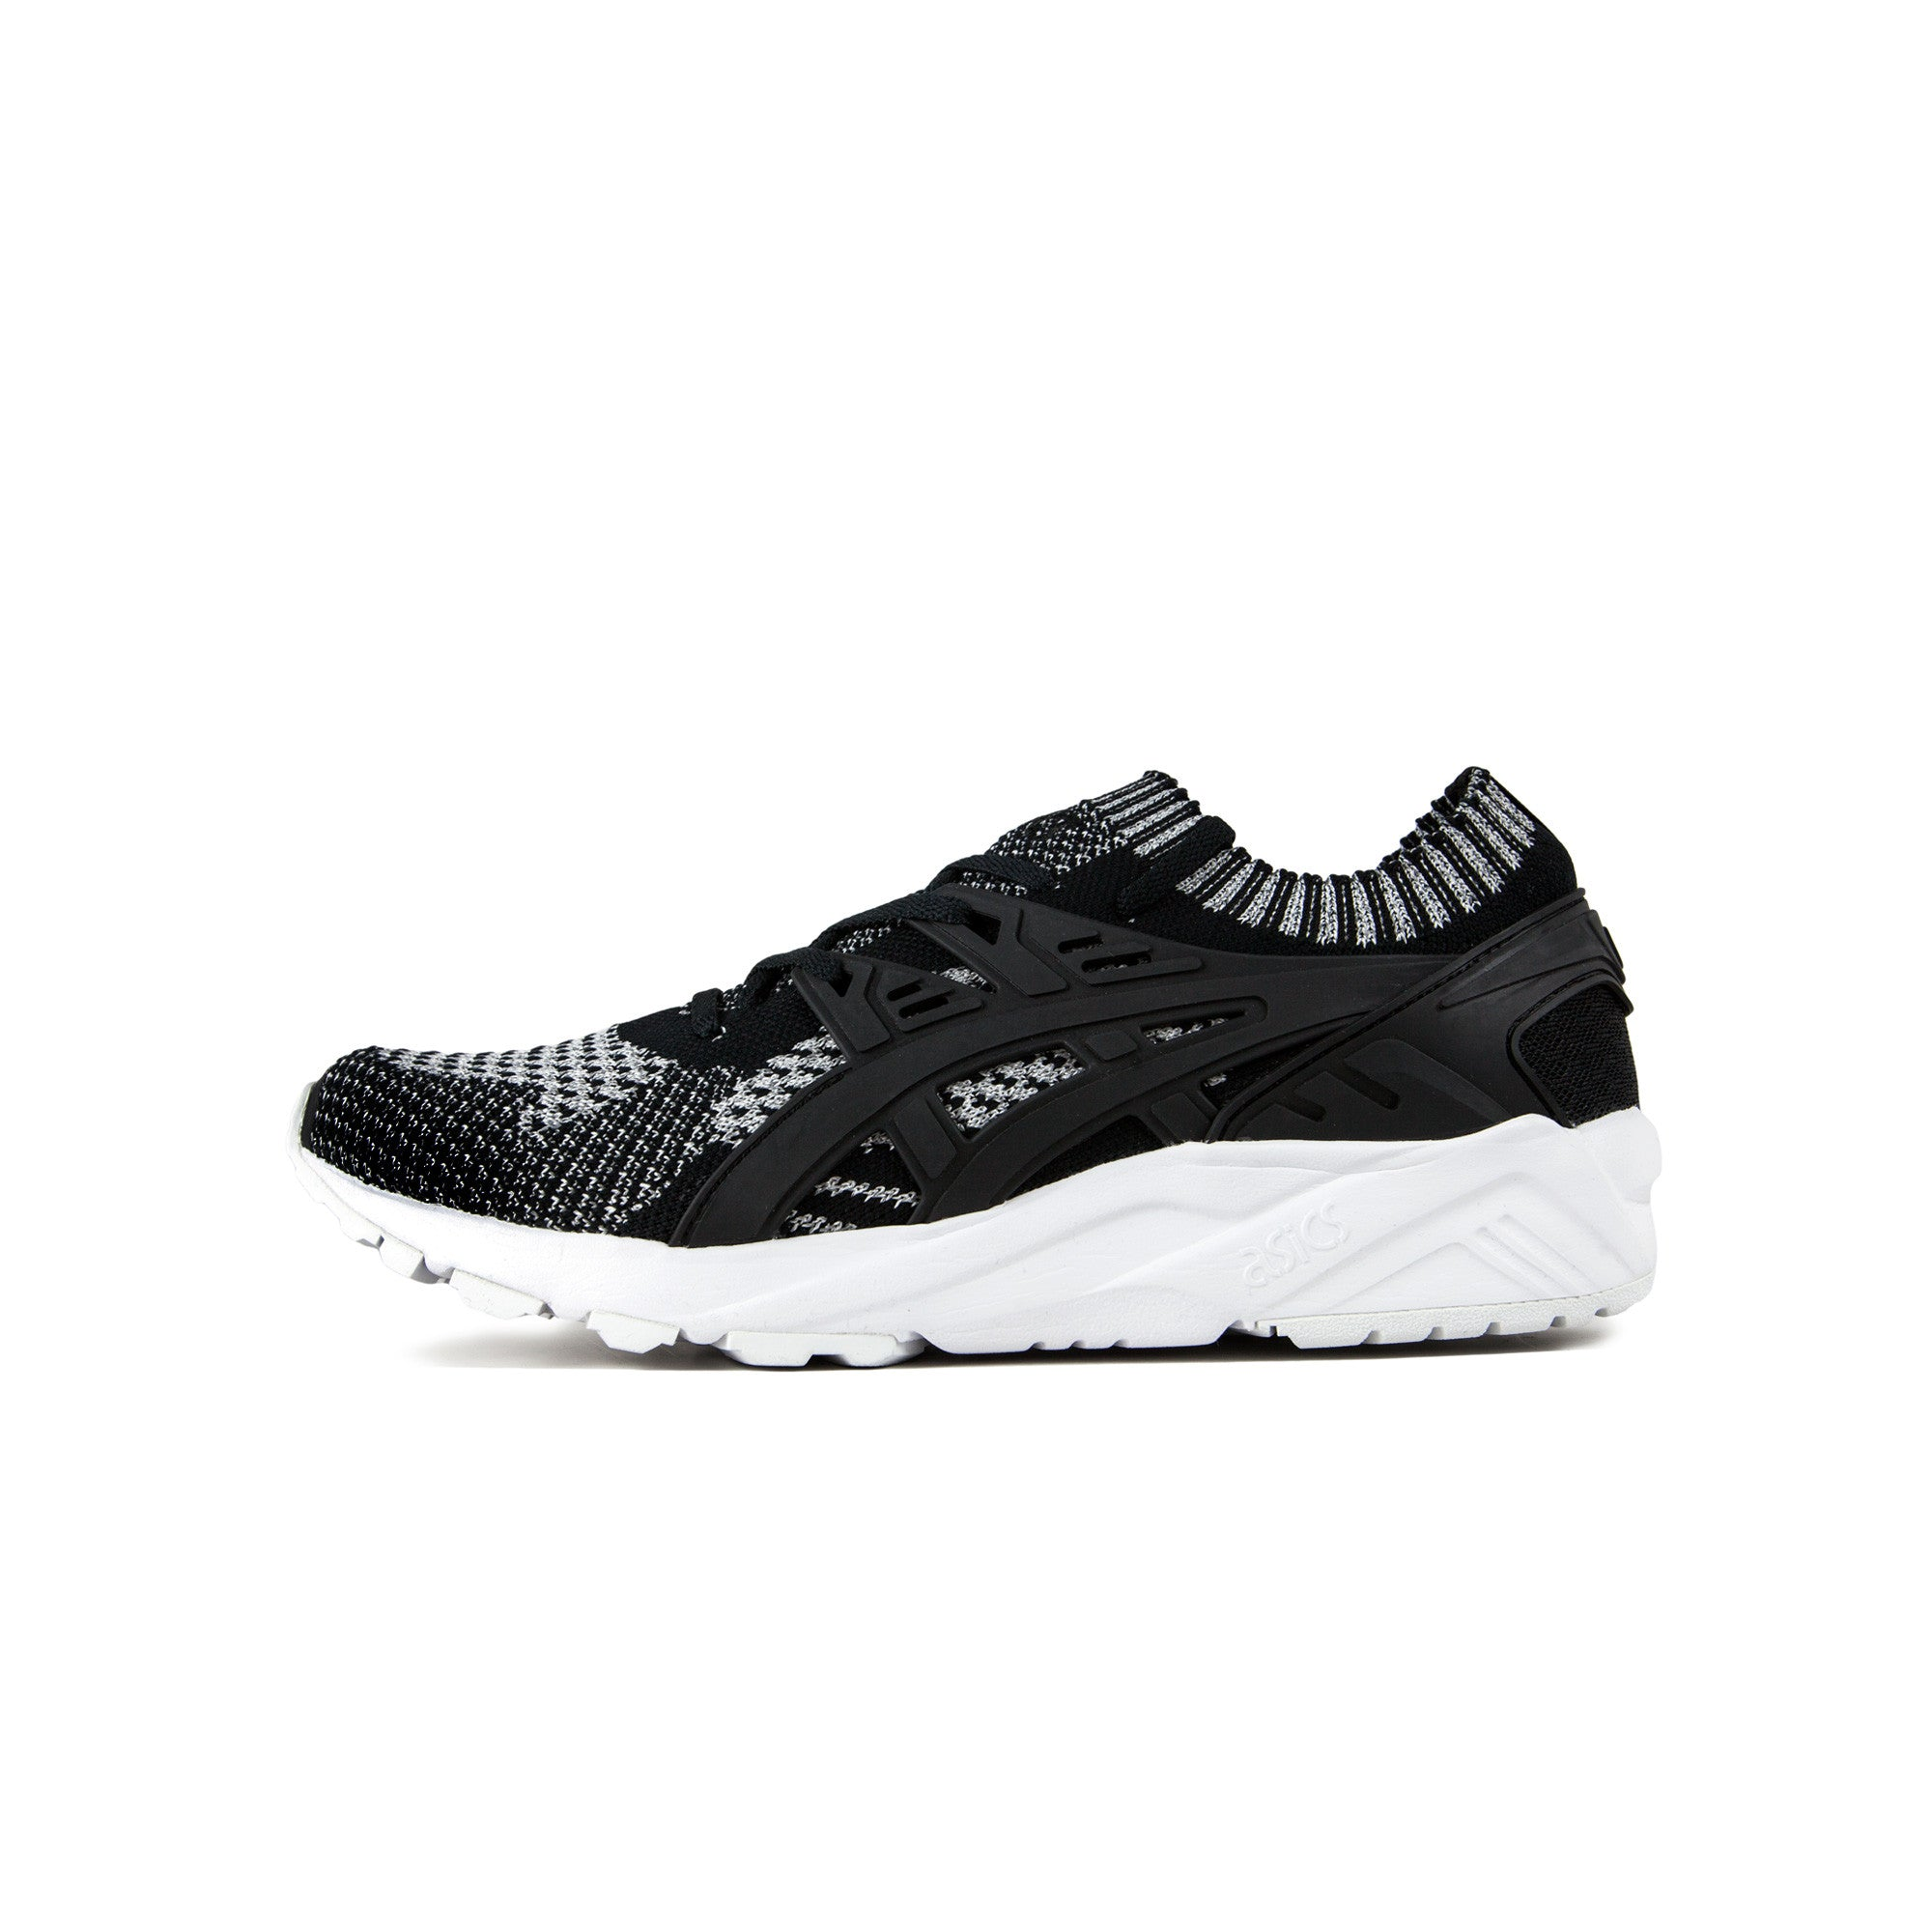 super popular 5aec9 8f58a Asics Men's Gel-Kayano Trainer Knit